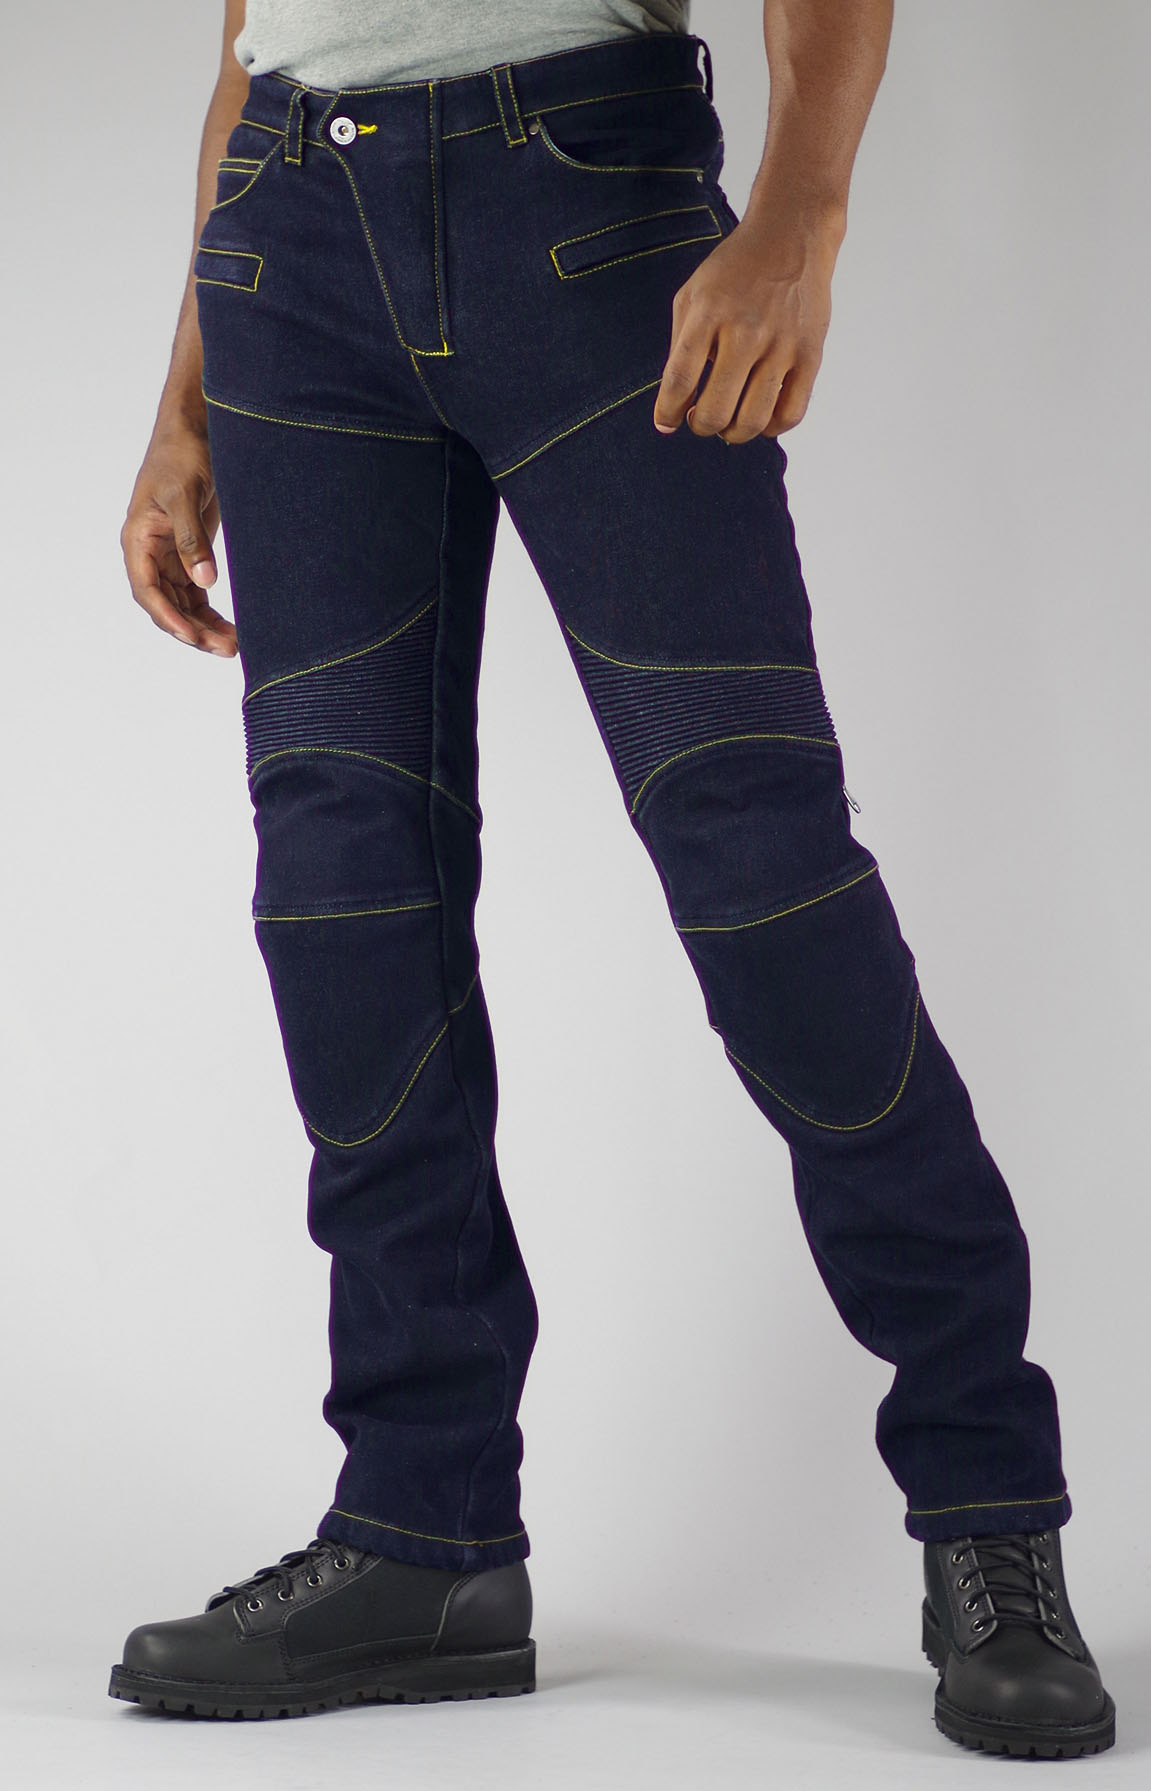 KOMINE WJ-921S Super Fit Warm Denim Jeans